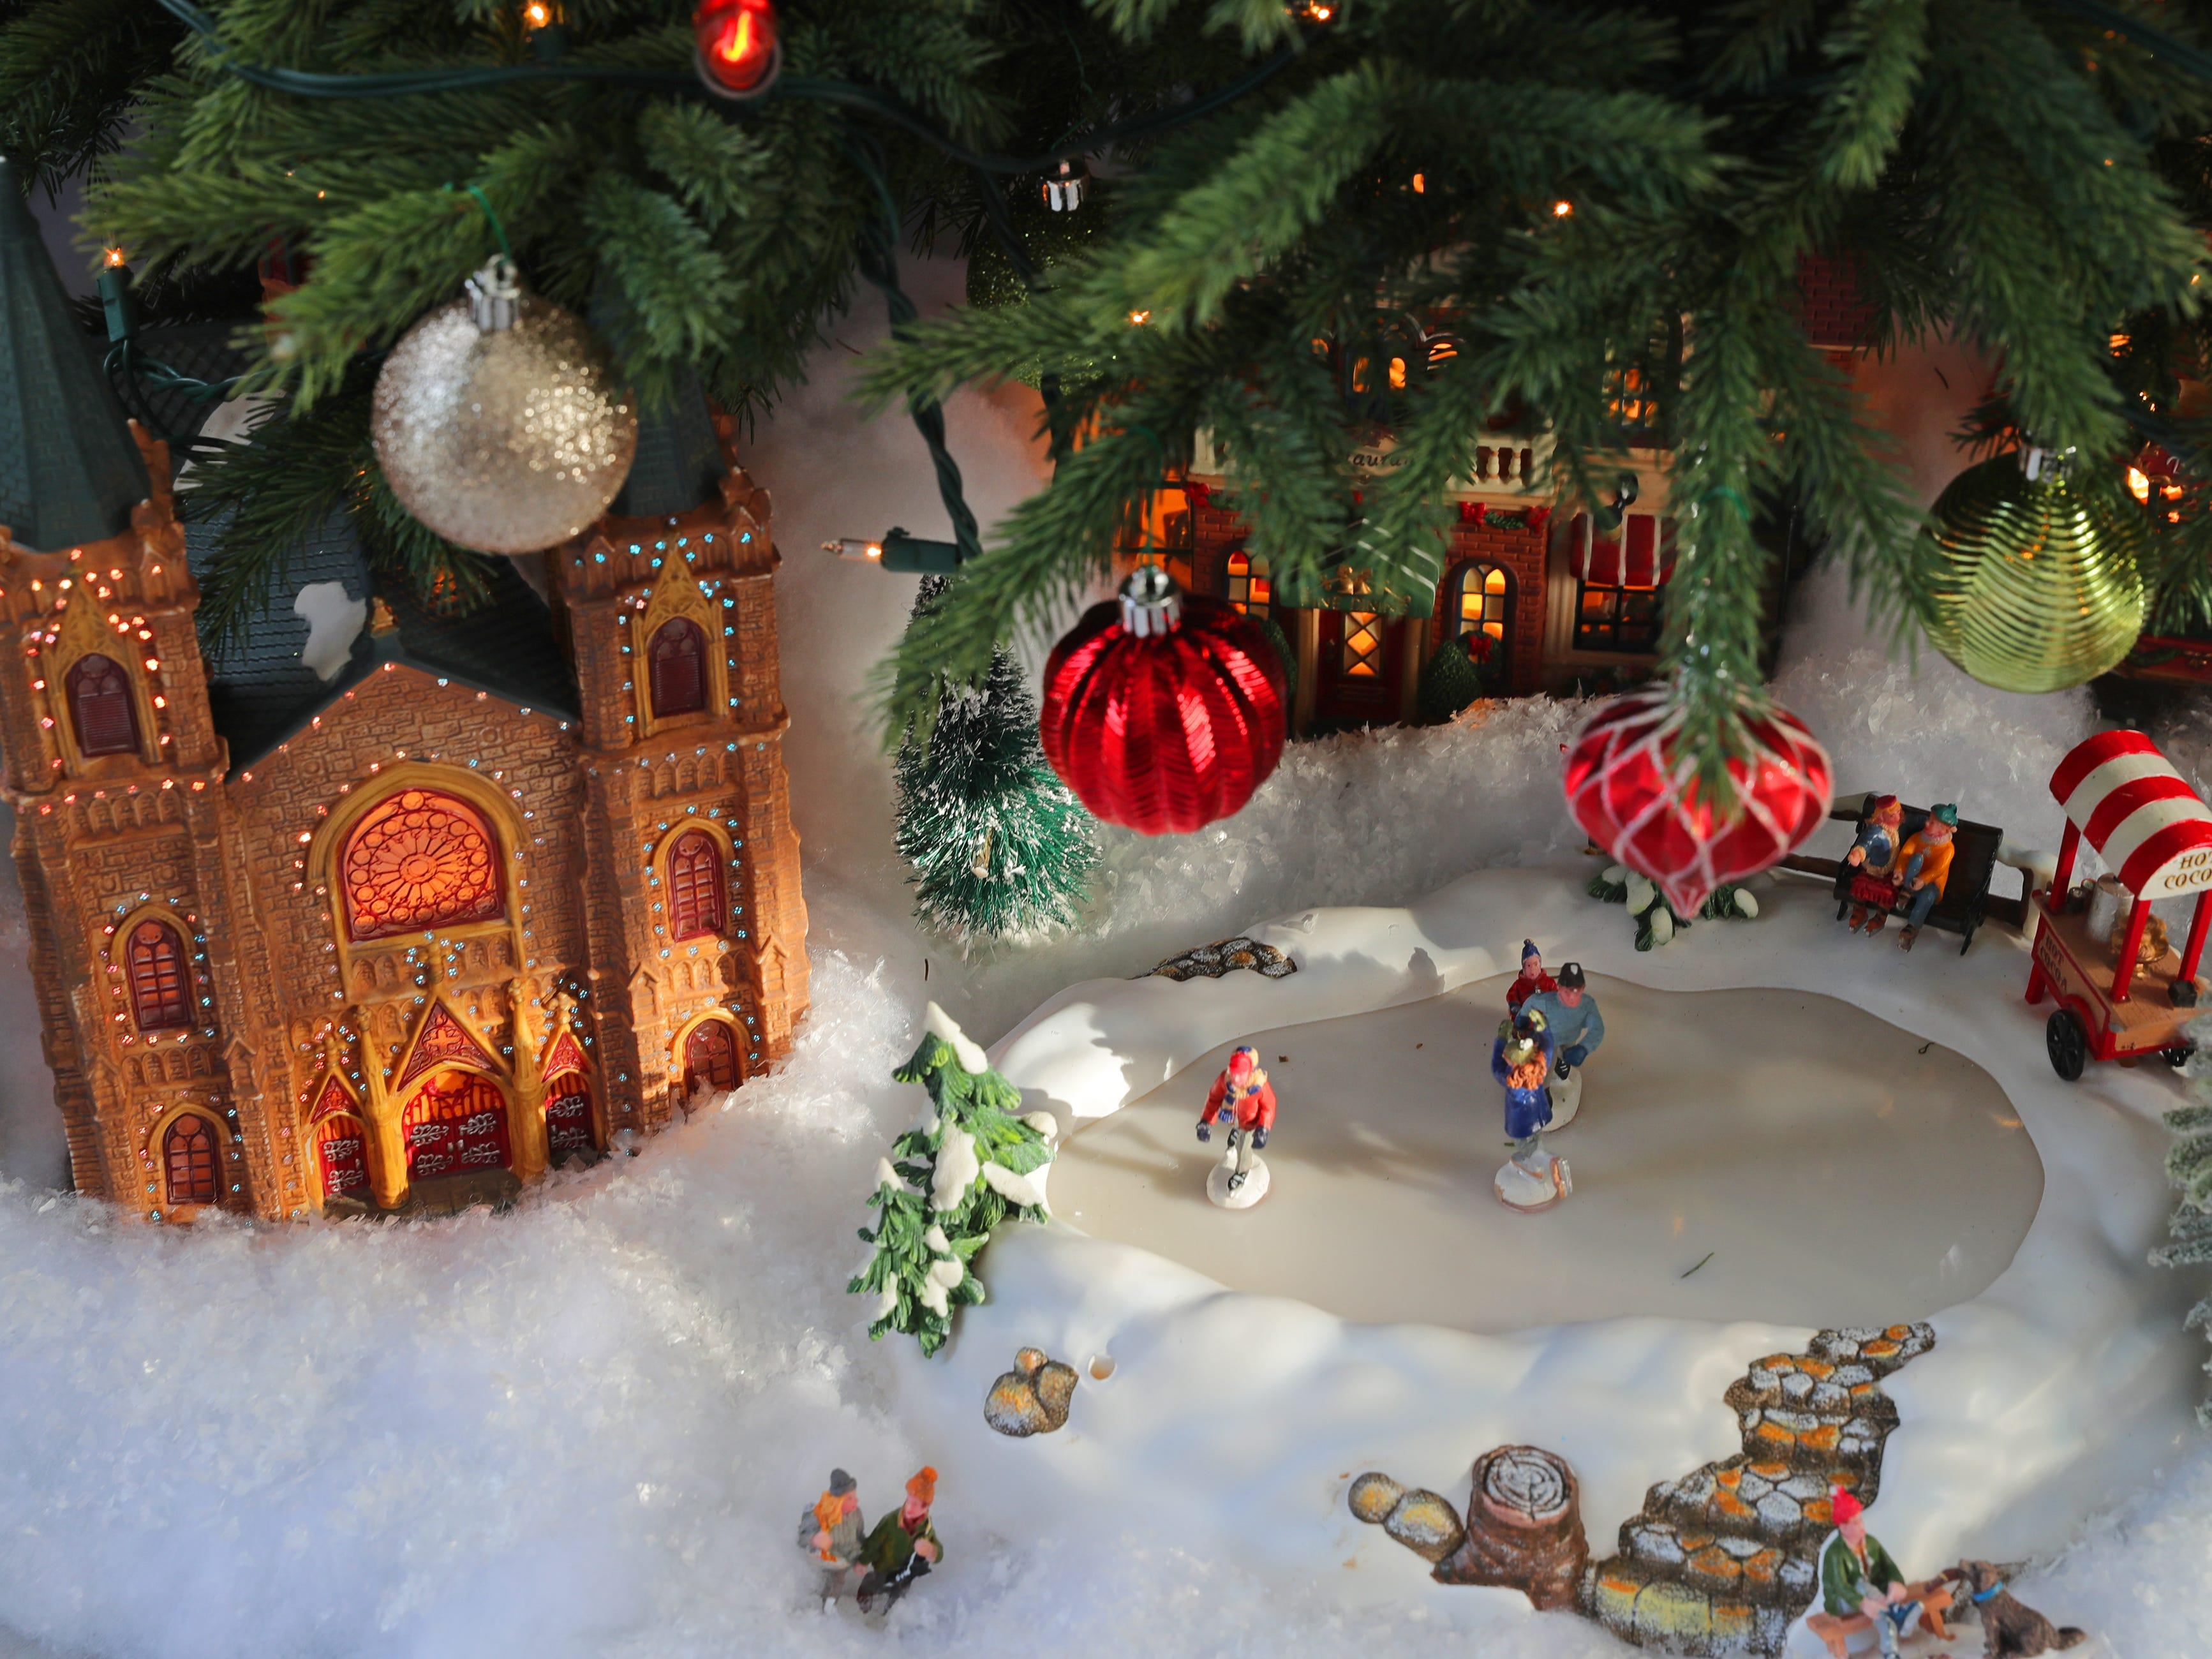 The lone real Christmas tree, inside the three-season room, has a Christmas village underneath with a miniature ice skating pond.